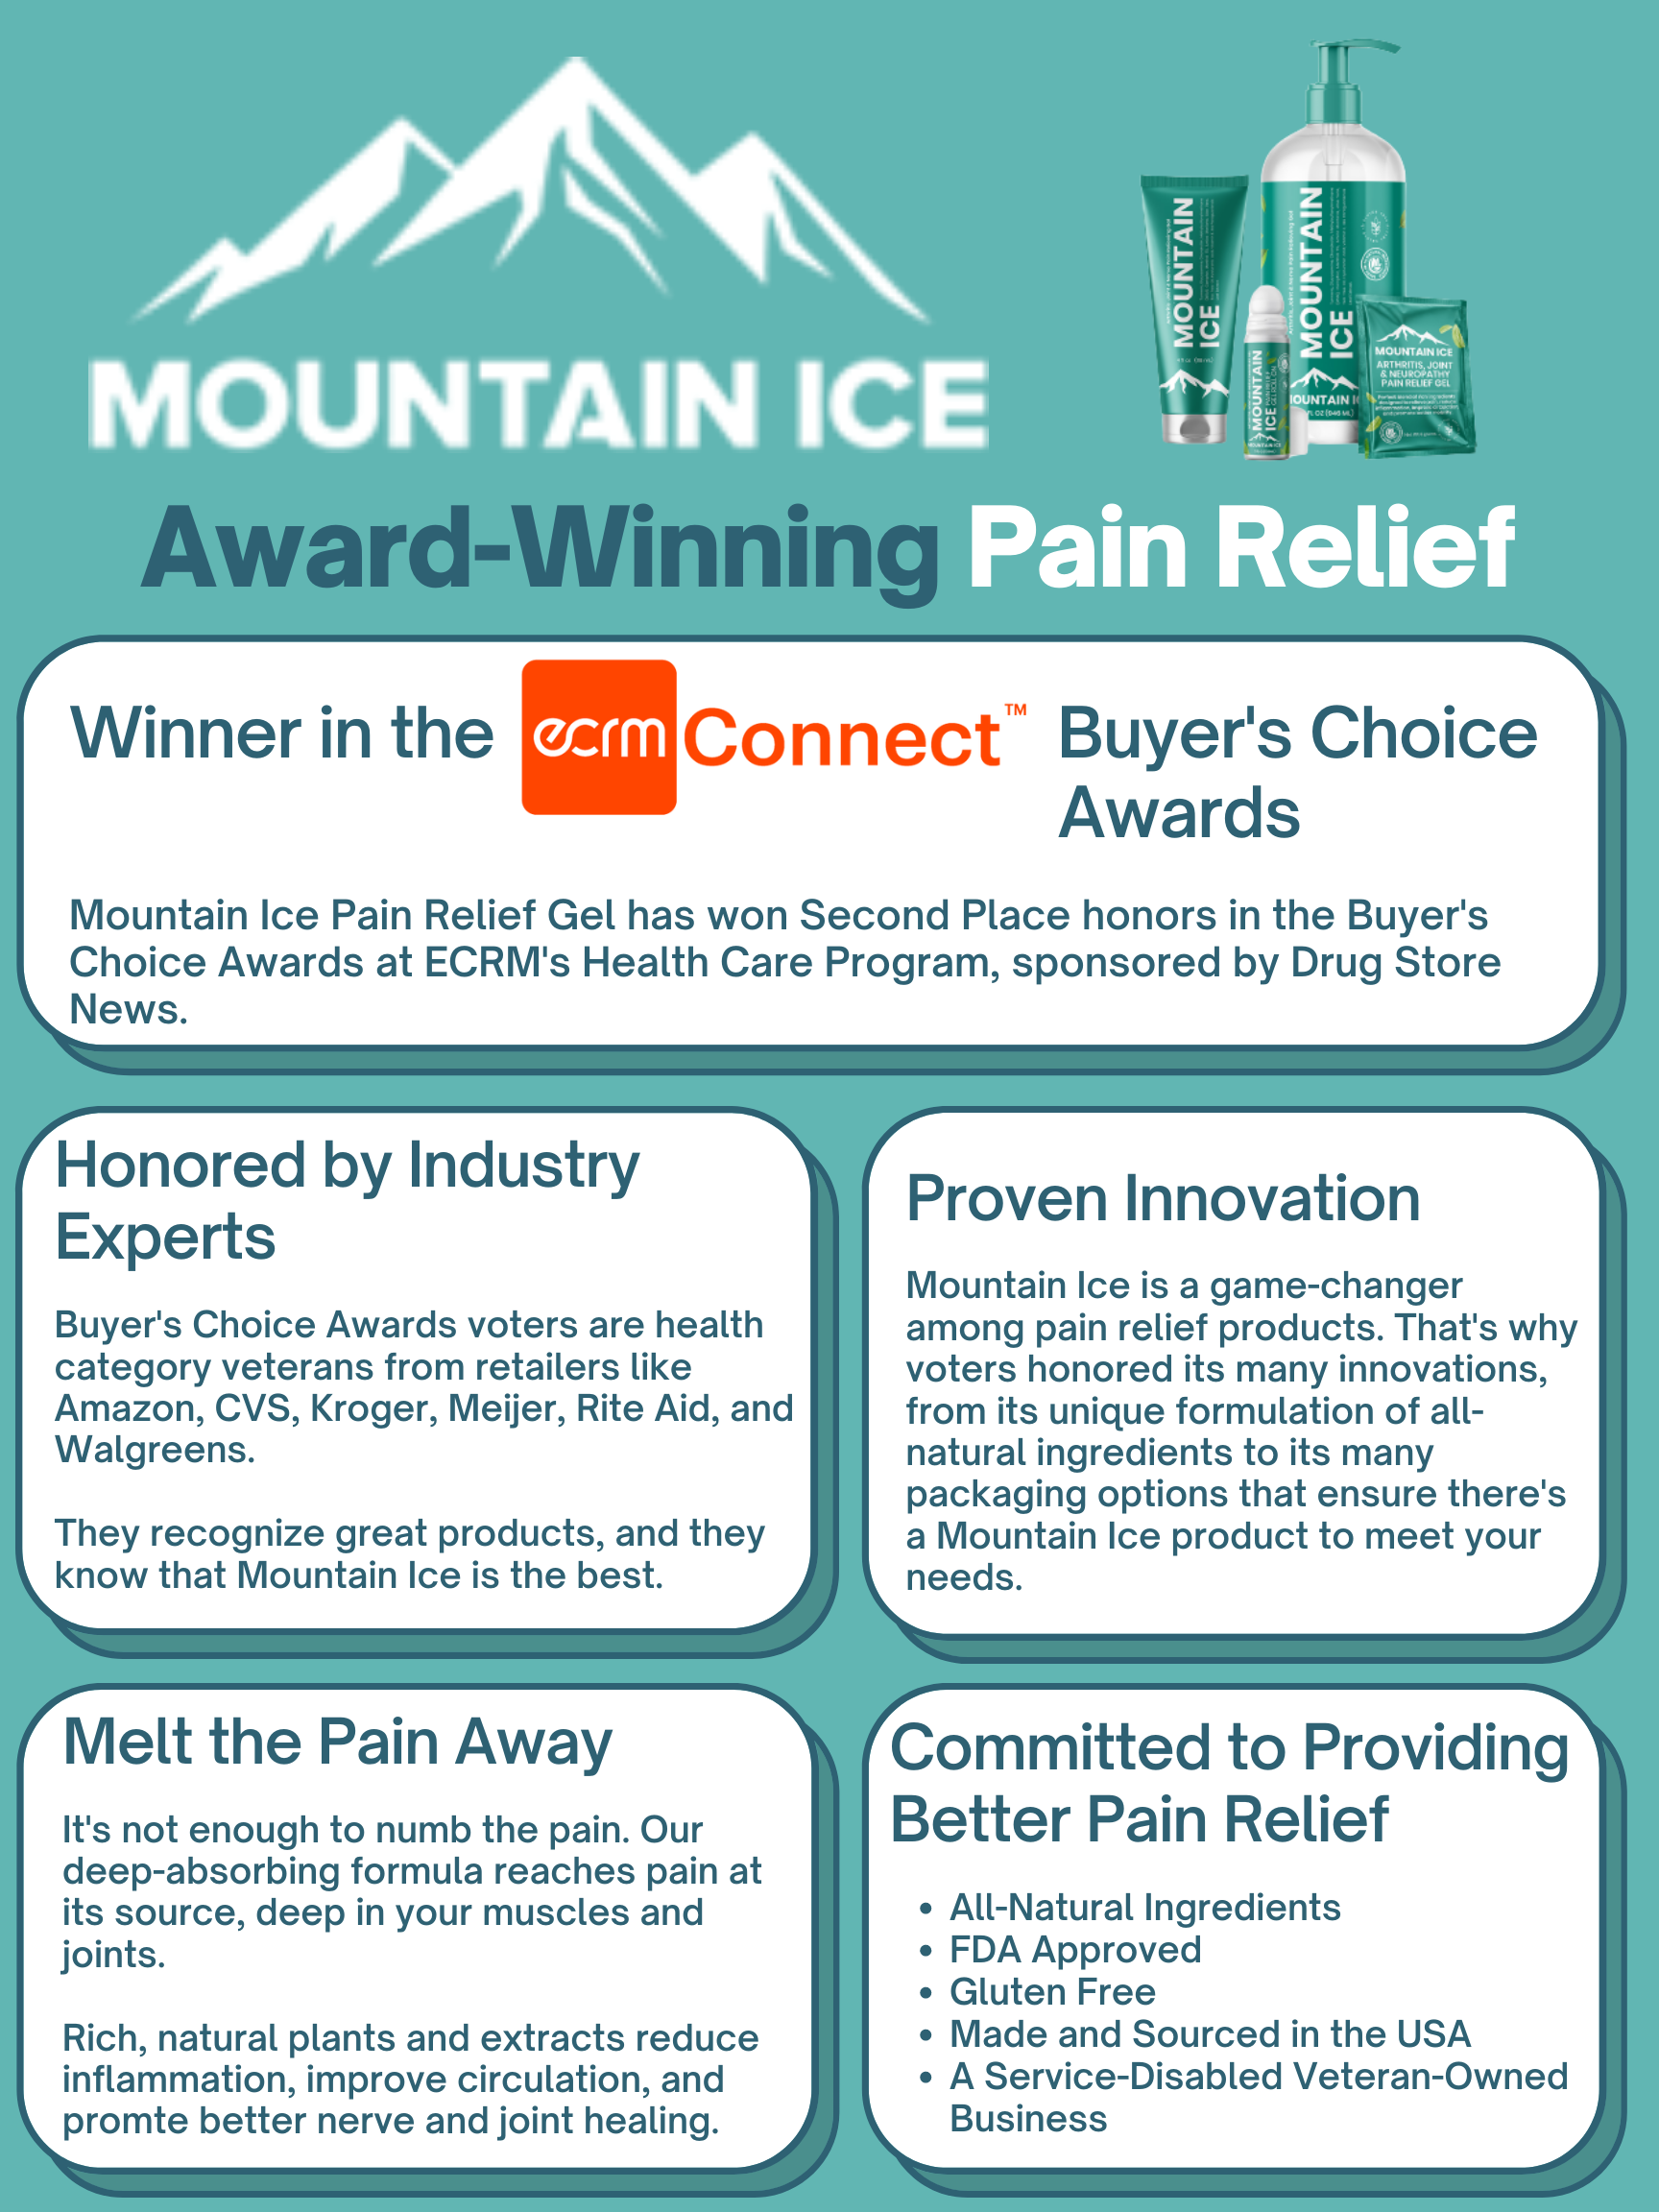 Get Award-Winning Pain Relief with Mountain Ice Pain Relief Gel